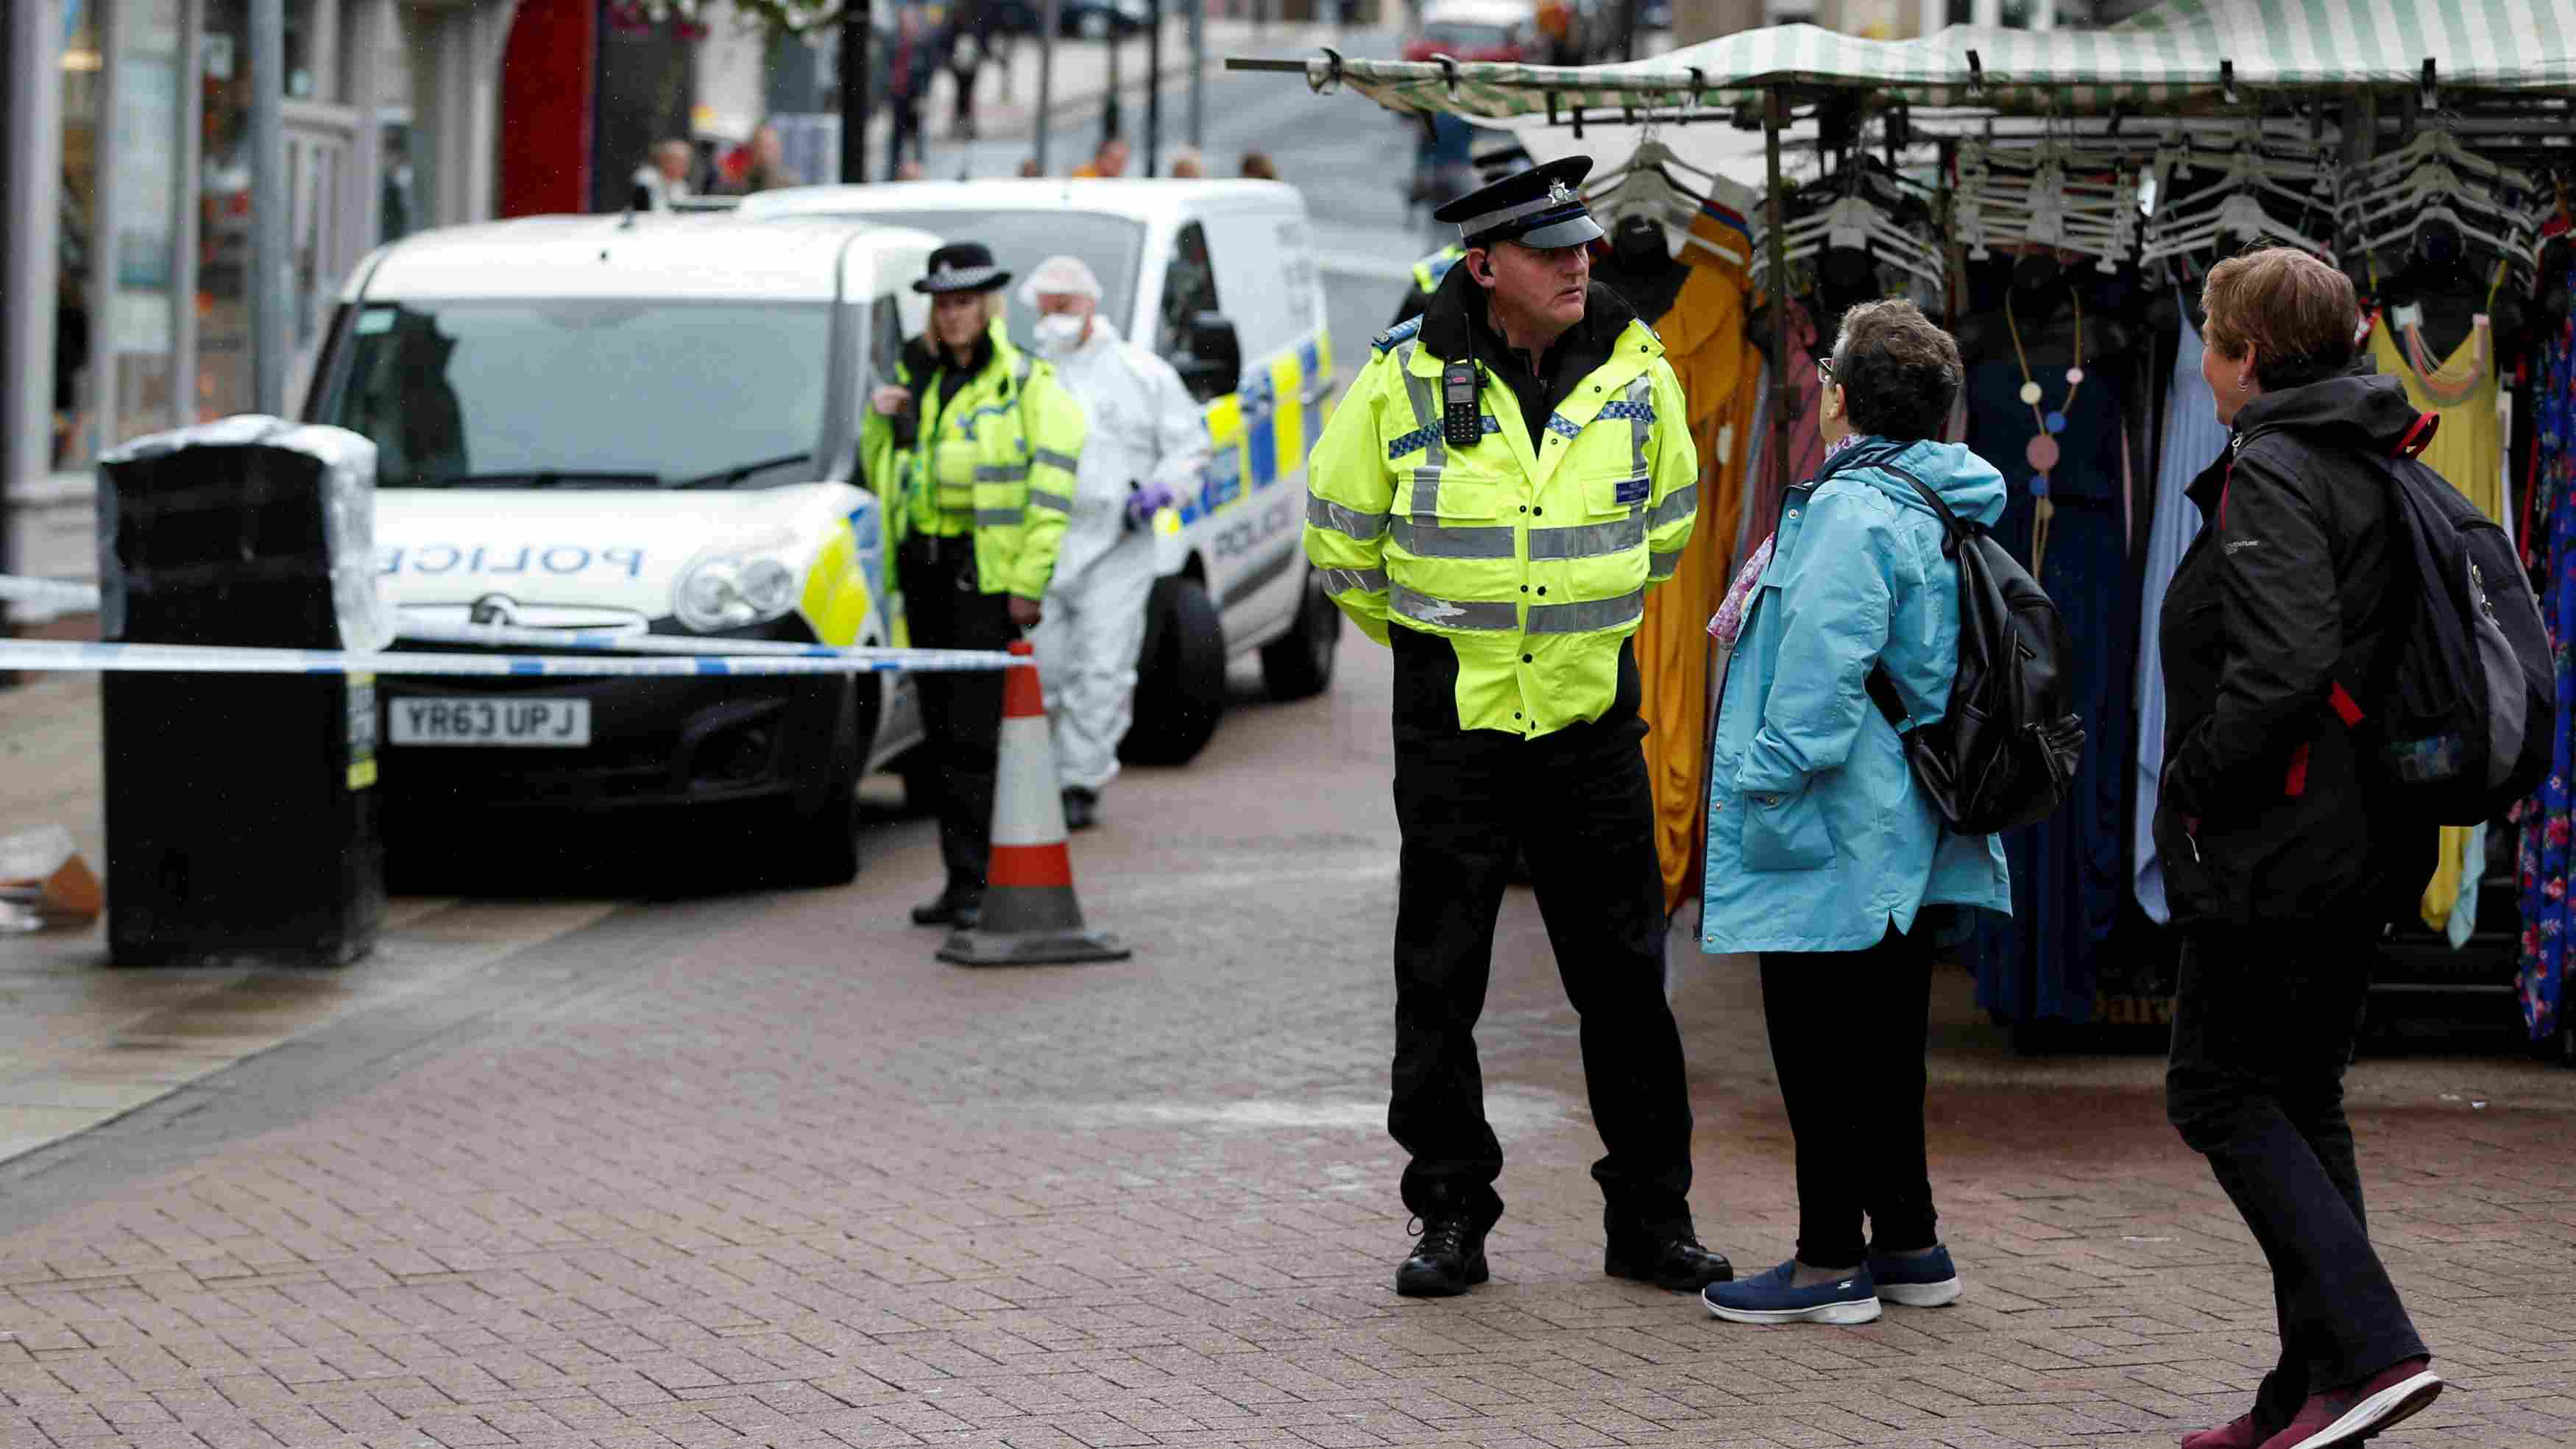 Police make arrest after stabbing in English town of Barnsley